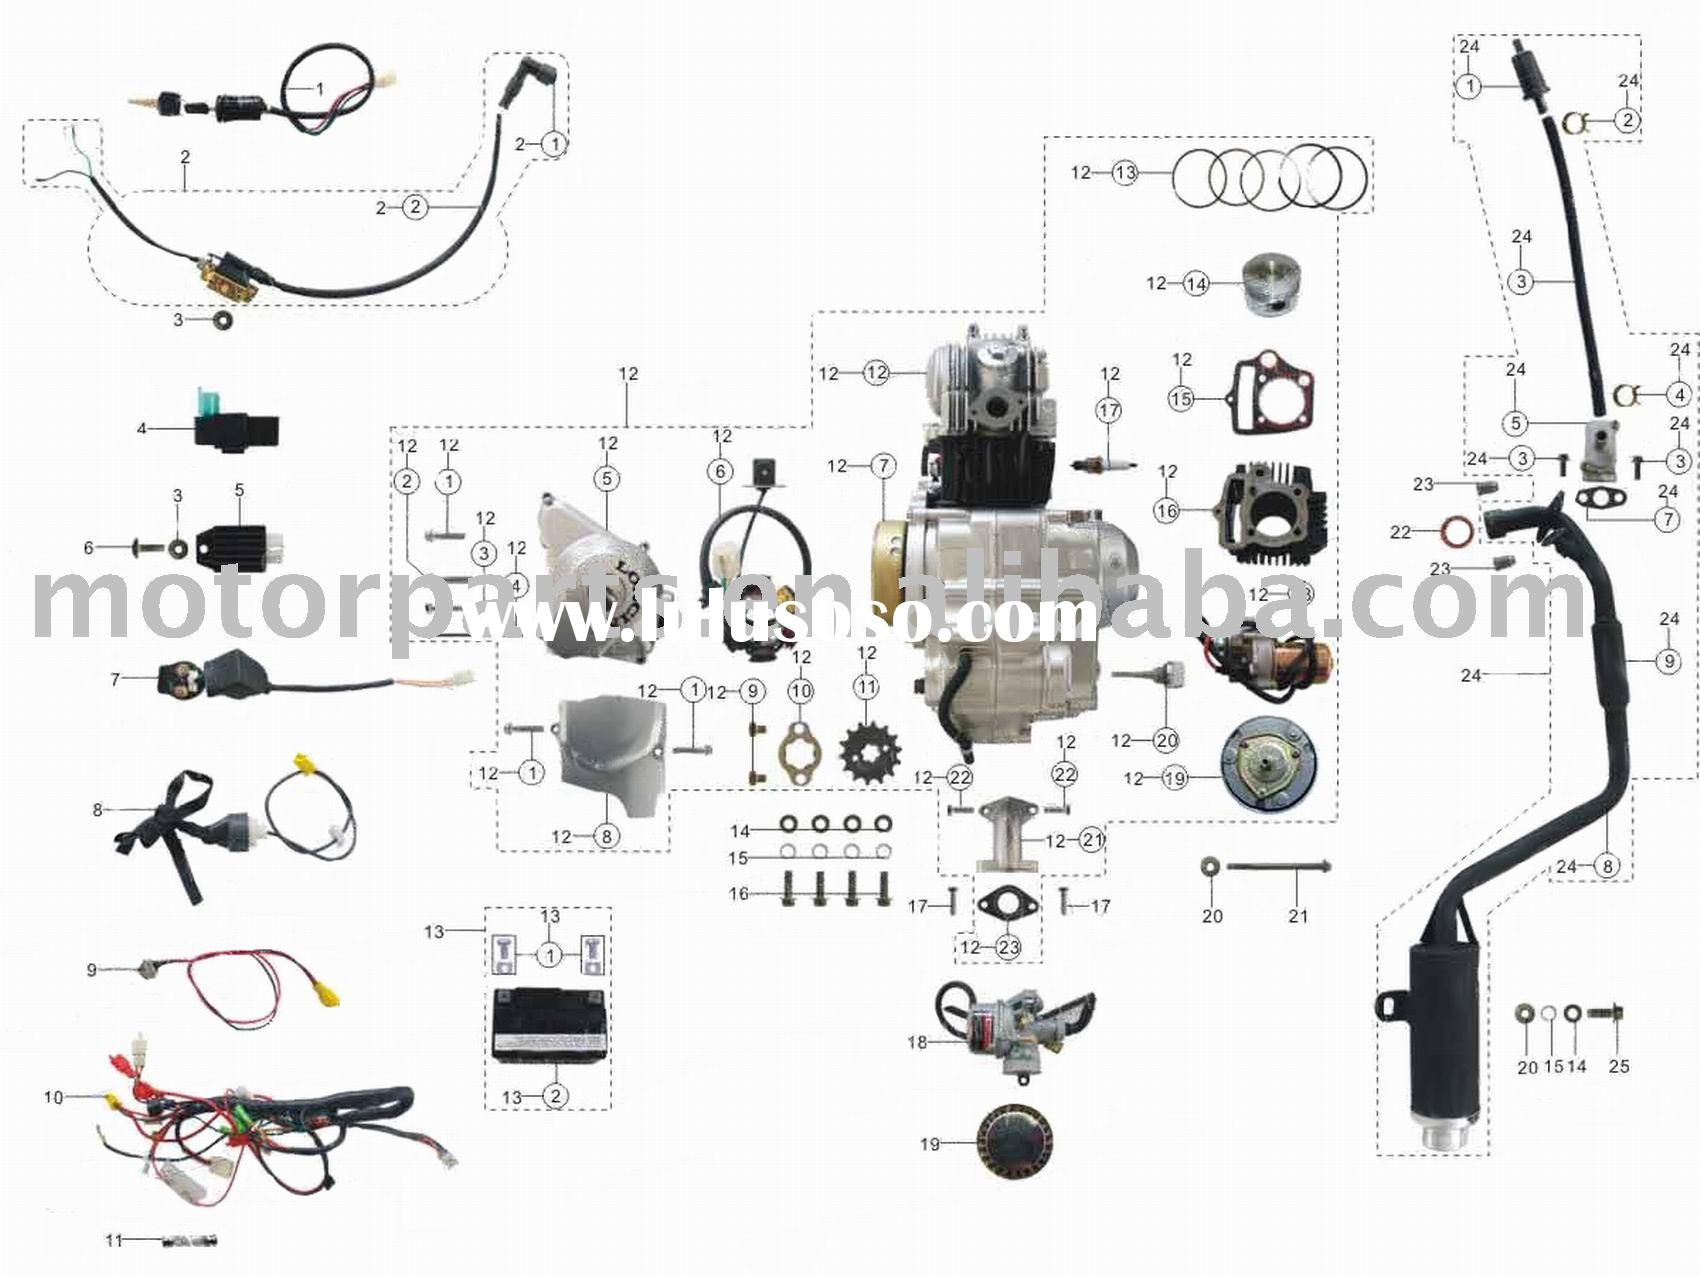 Bashan 200cc Quad Wiring Diagram